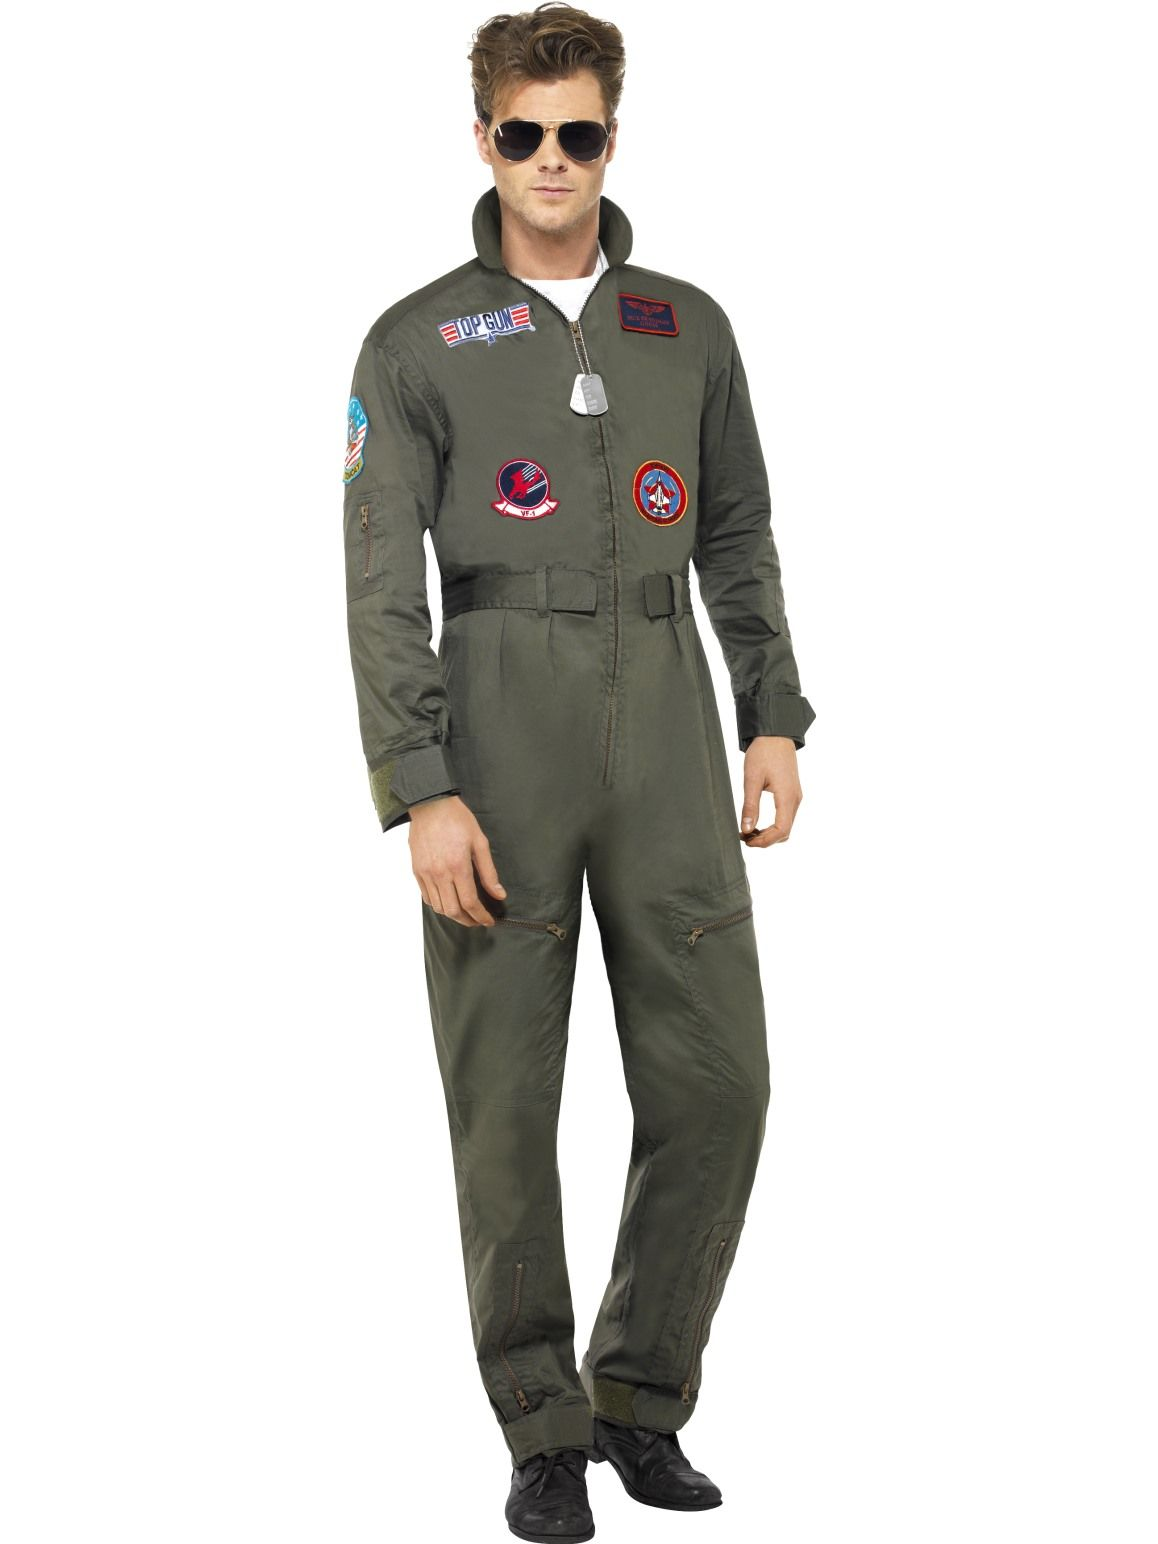 Top Gun Deluxe Costume - Buy Online Only